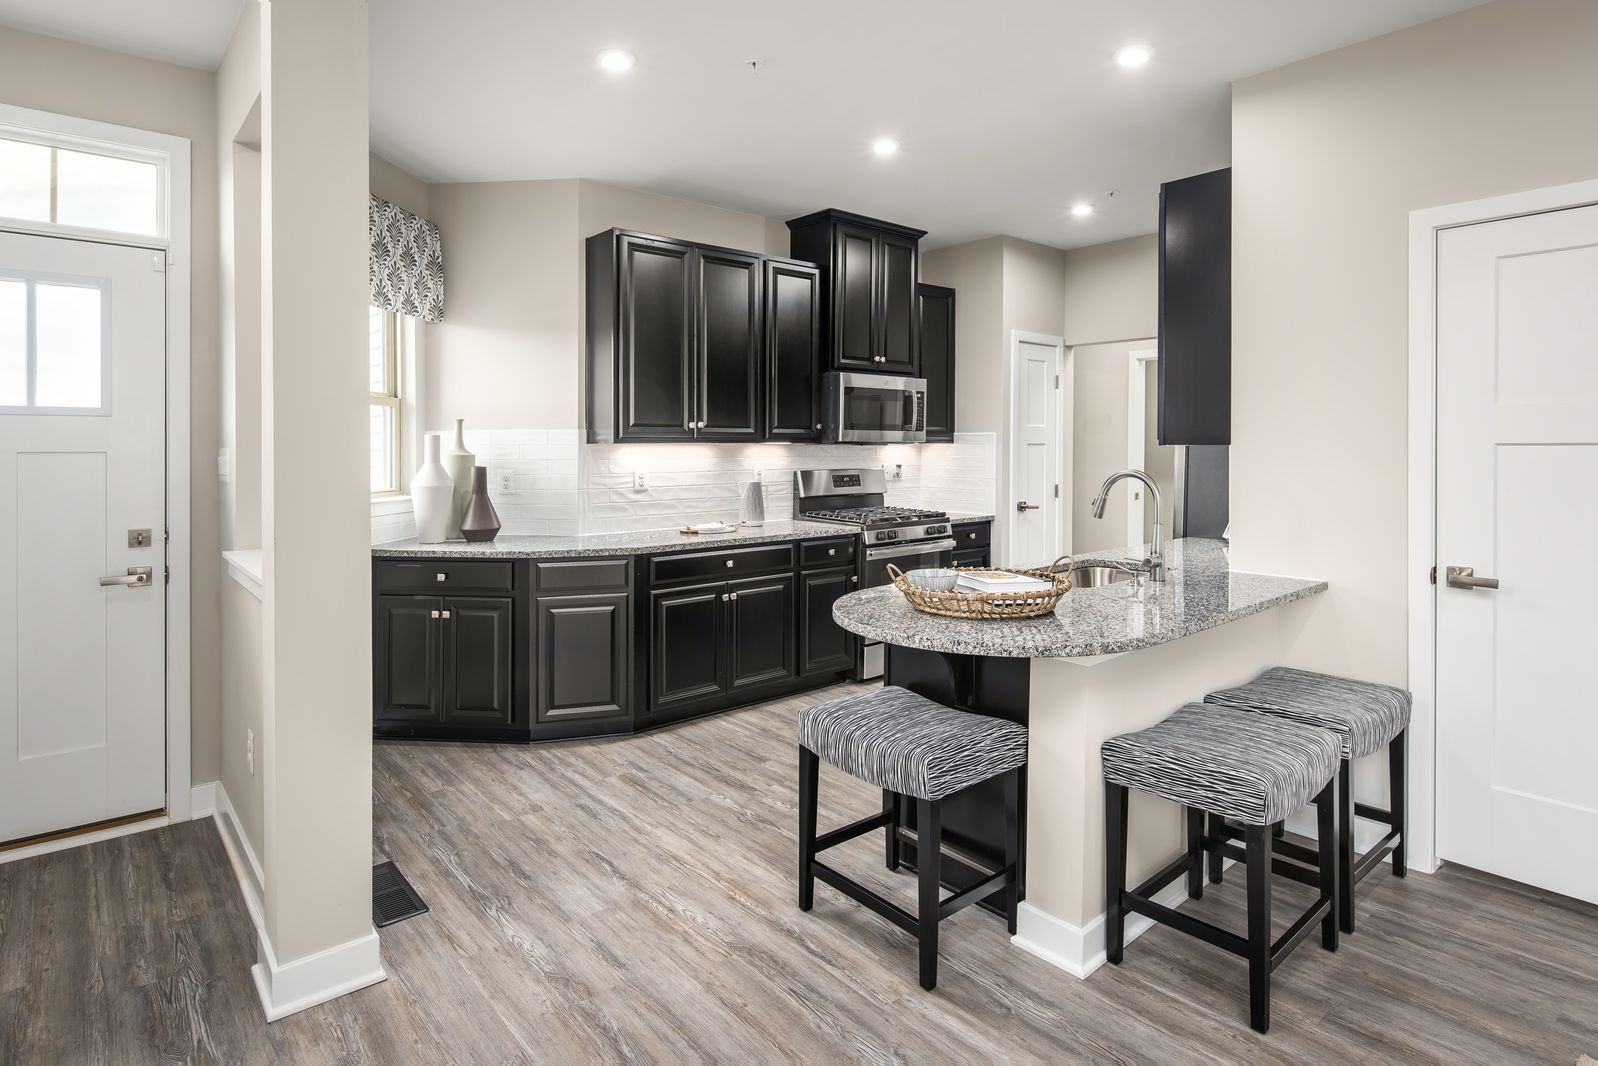 Kitchen featured in the Calvert - Basement By Ryan Homes in Washington, MD